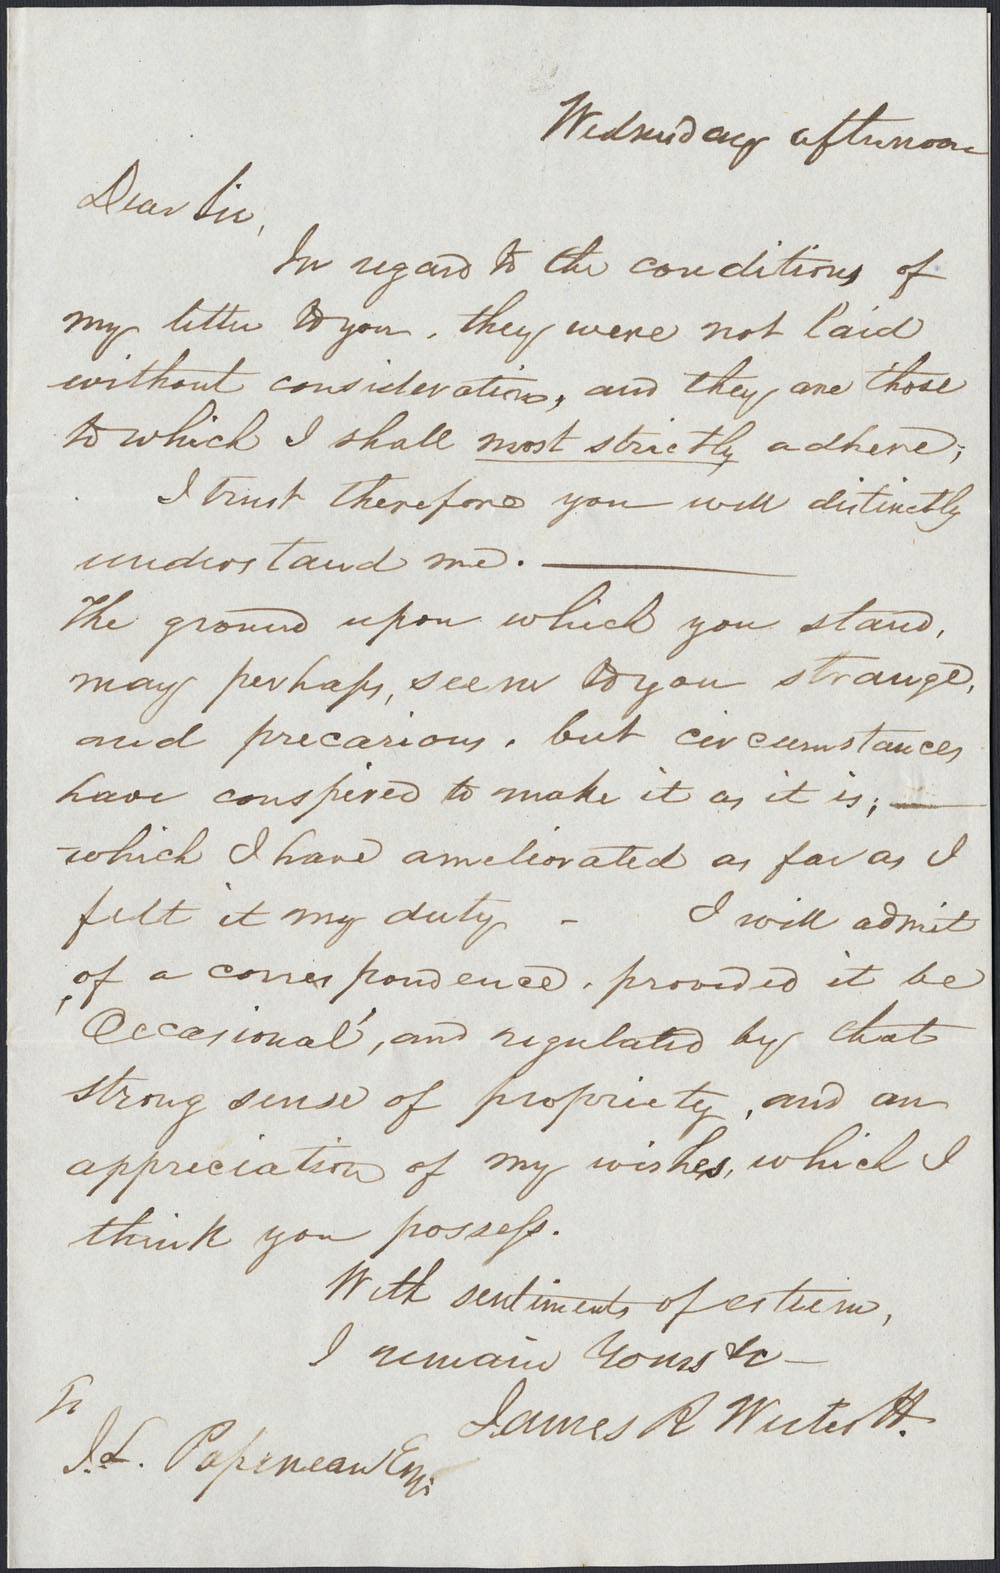 [Correspondance de Mary Westcott] 1843 . (item 5)